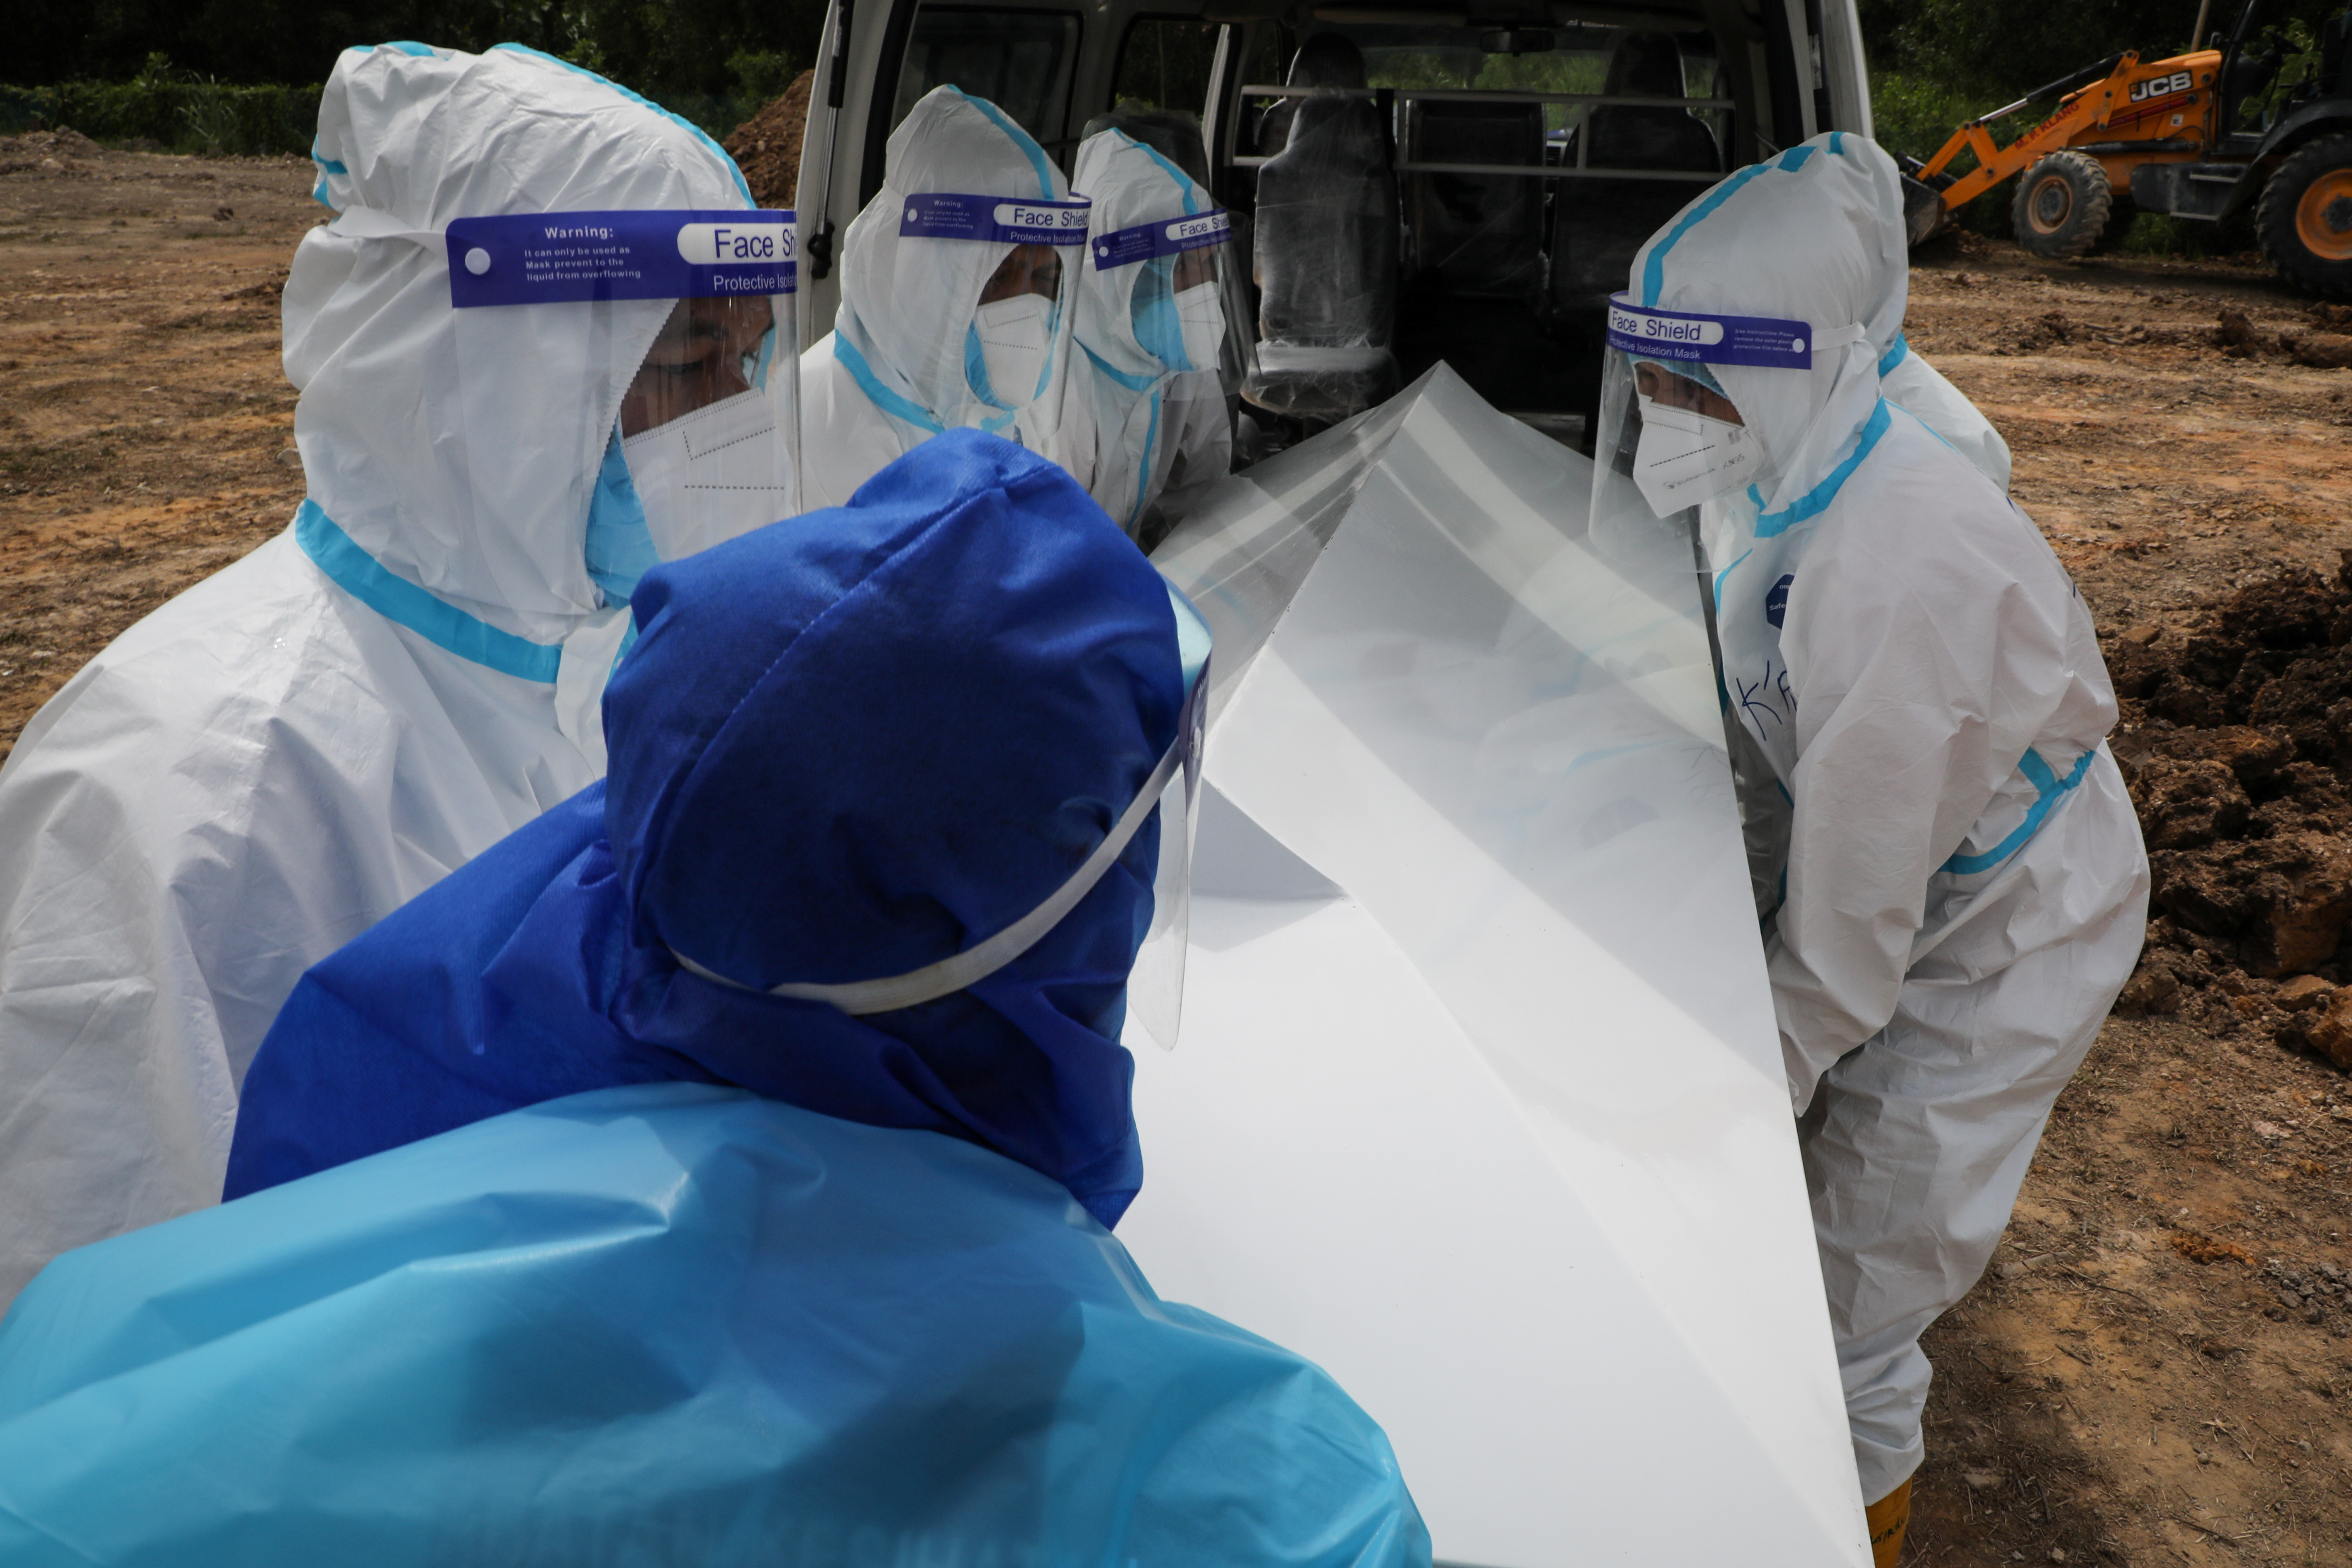 Cemetery workers wearing protective suits carry the body of a coronavirus disease (COVID-19) victim at a cemetery in Klang, Malaysia July 24, 2021. REUTERS/Lim Huey Teng